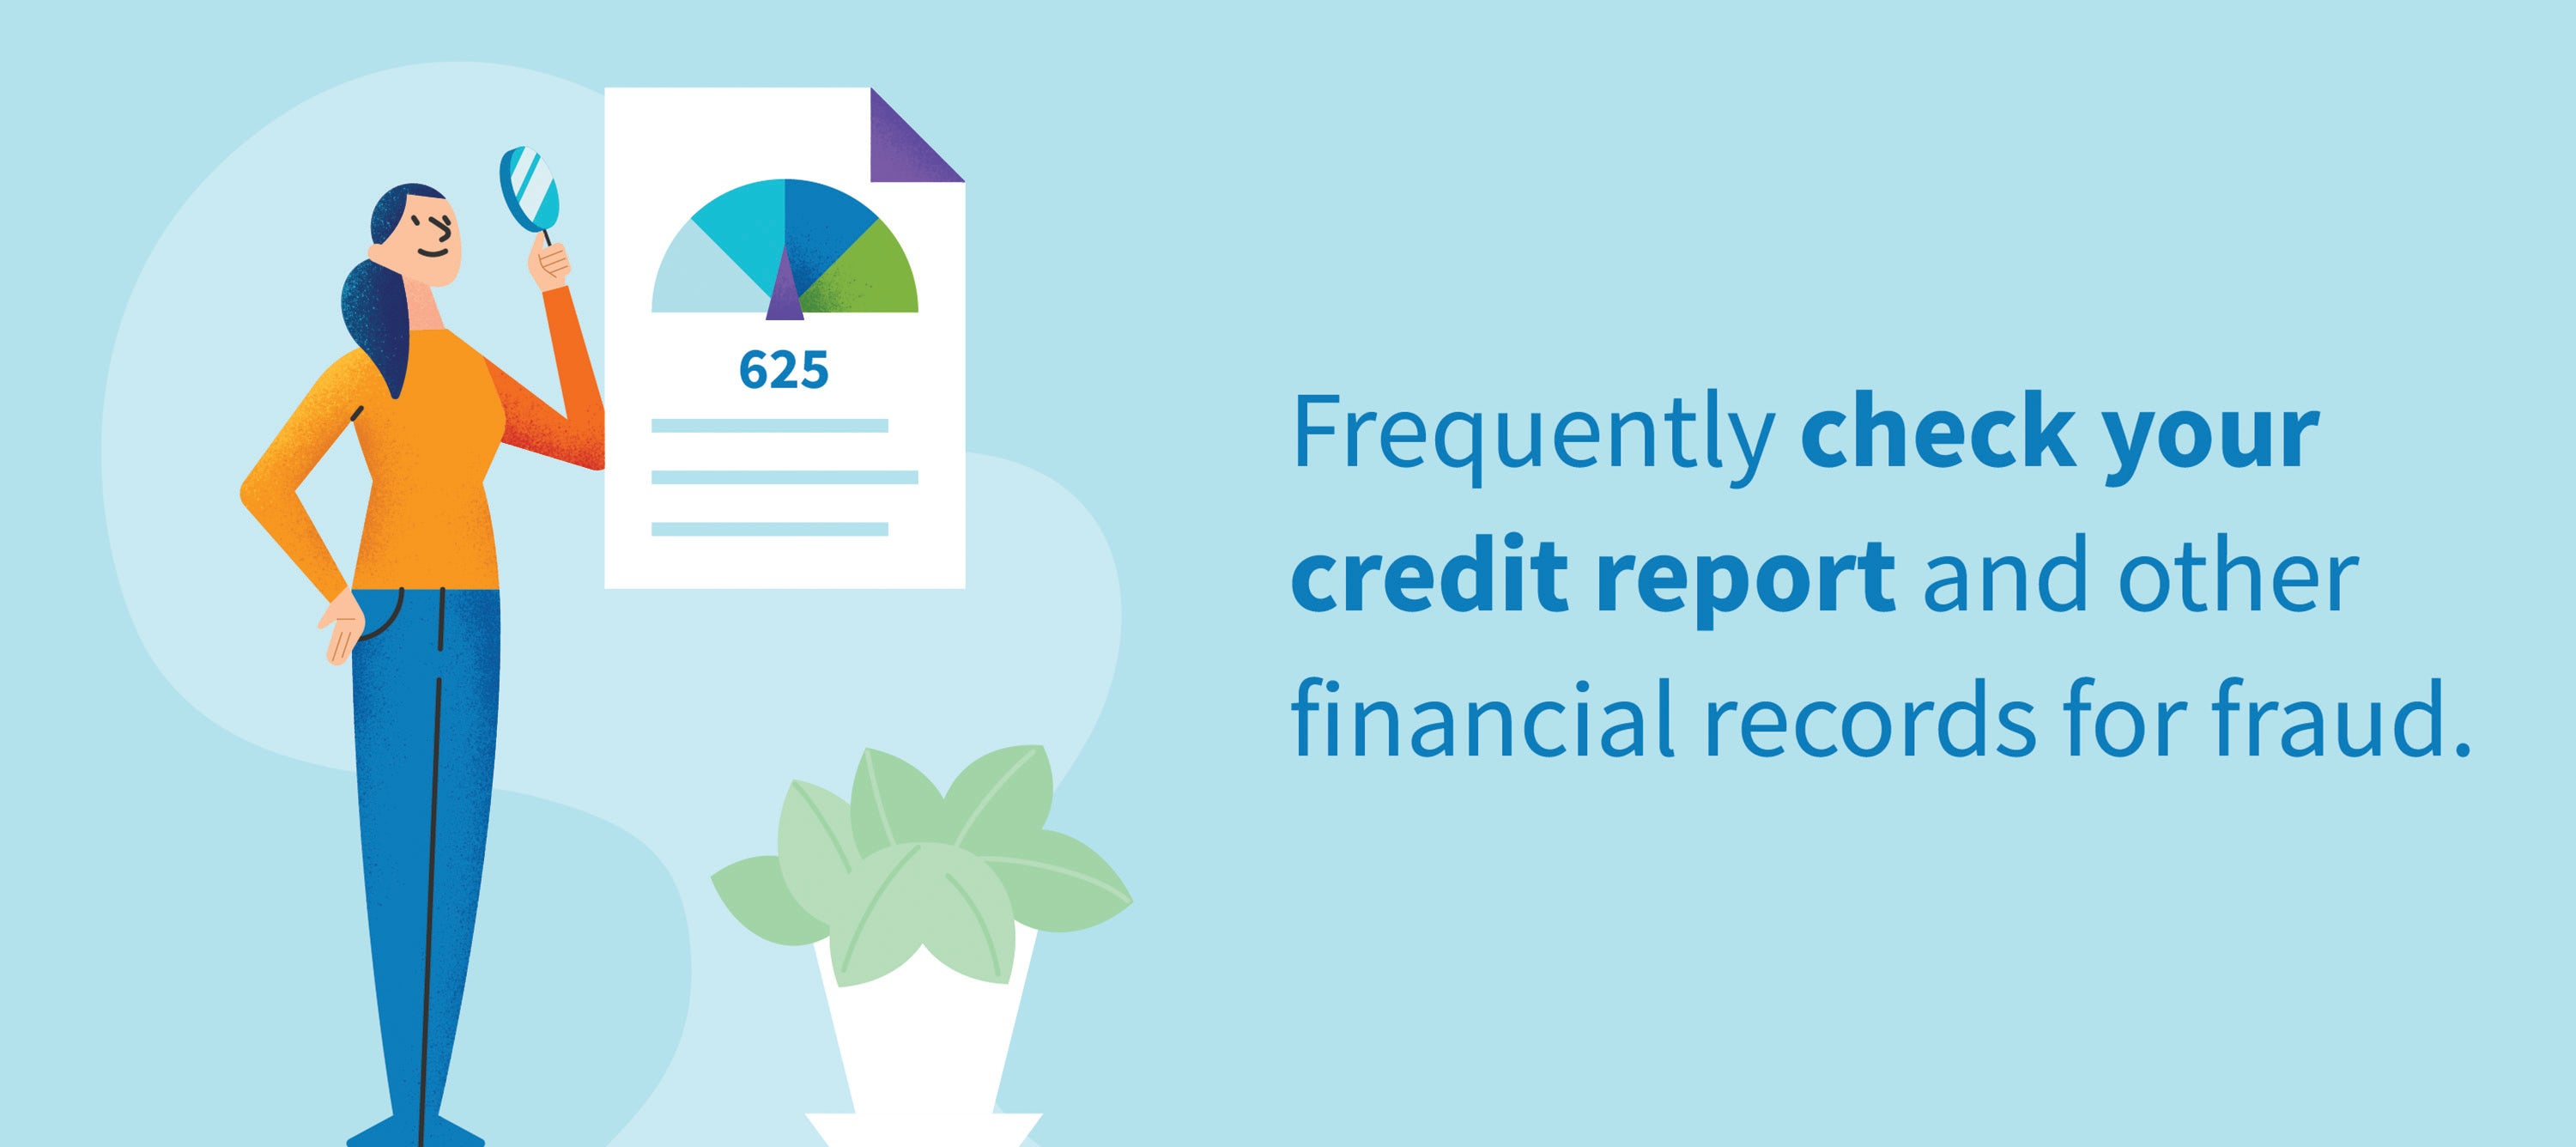 Frequently check your credit report and other financial records for fraud.